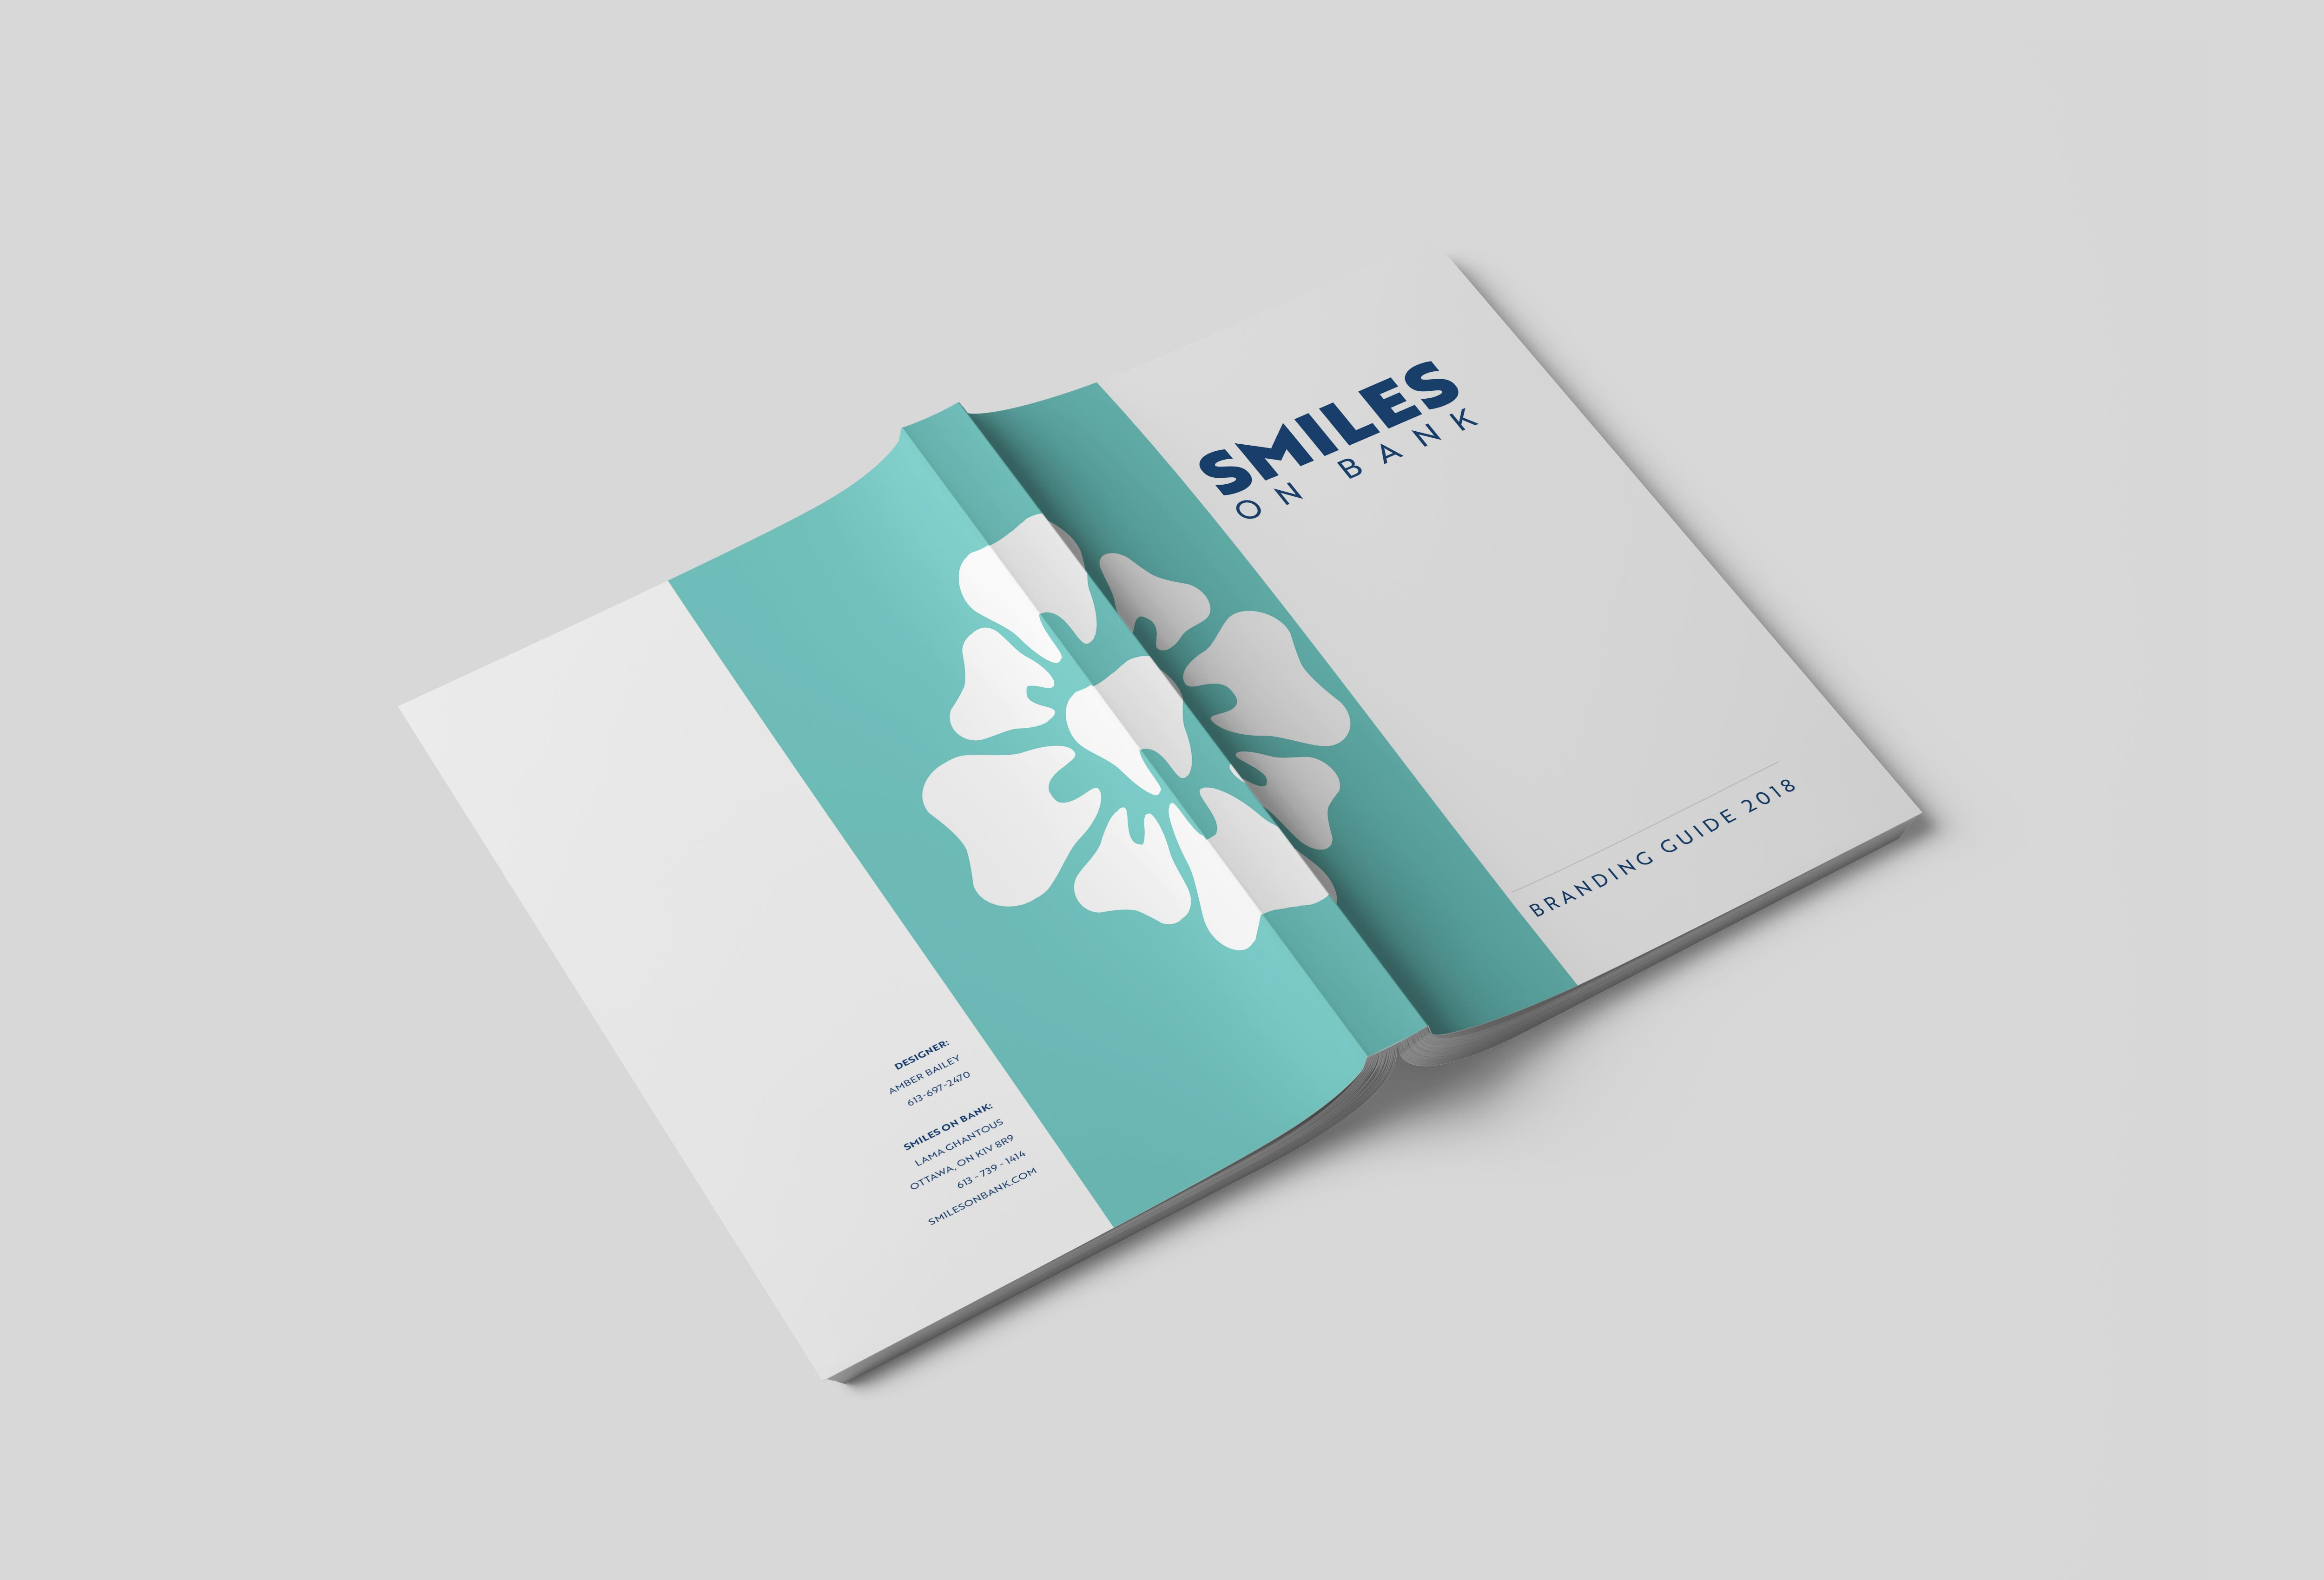 Front cover of the branding guidelines mockup